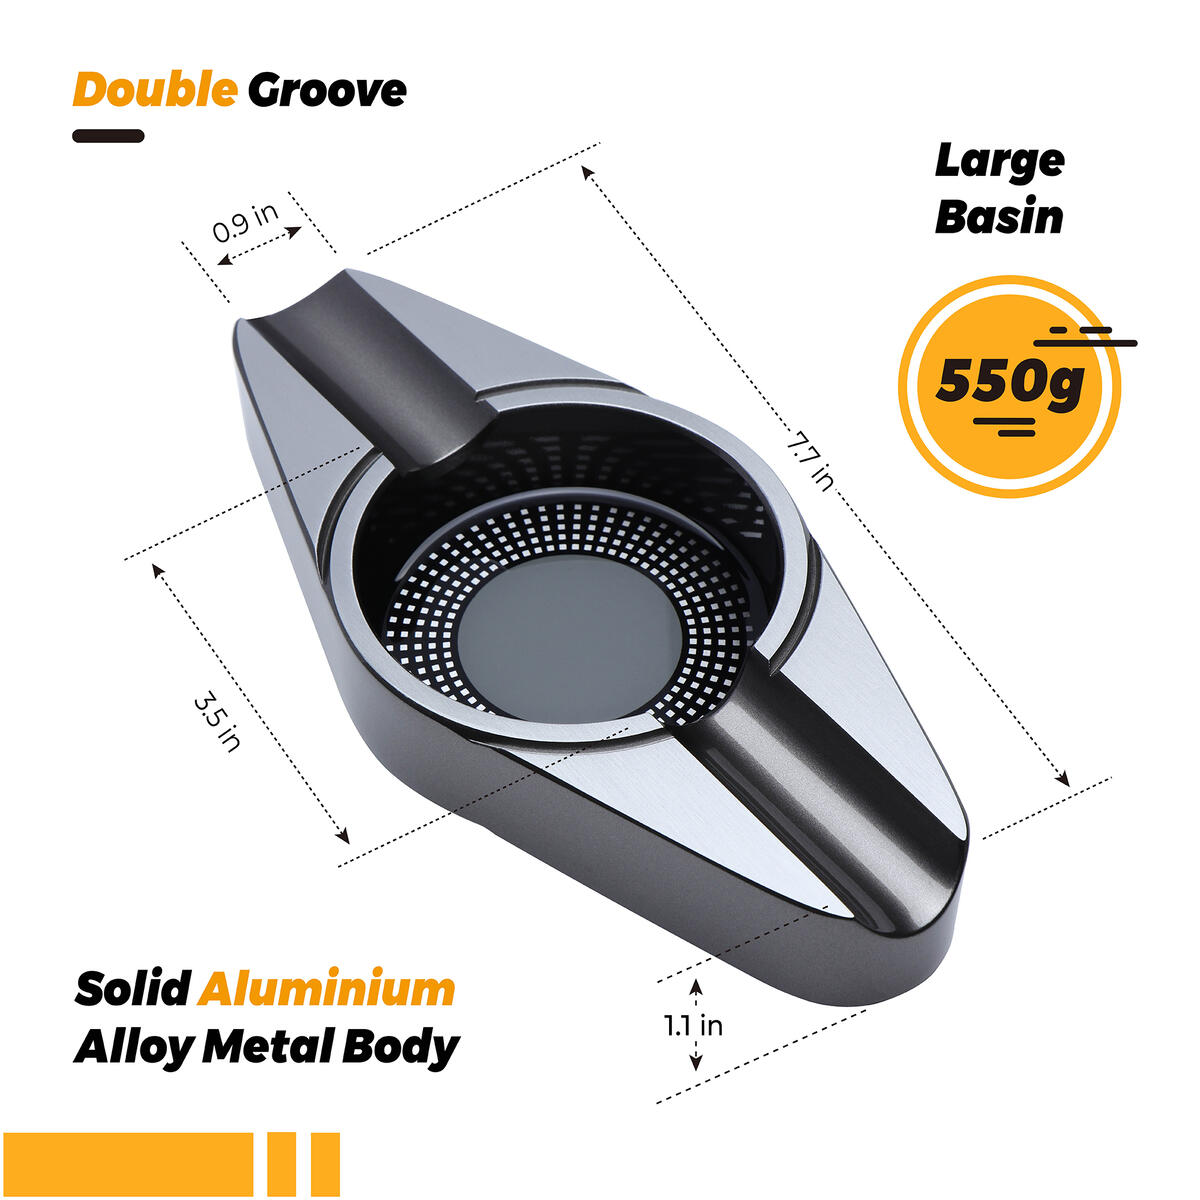 VEXO Cigar Ashtray Metal Ash Tray with Double 2 Cigar Holders and Large Basin for Outdoor Patio Indoor Home and Office Use, Cool Cigar Gift Idea